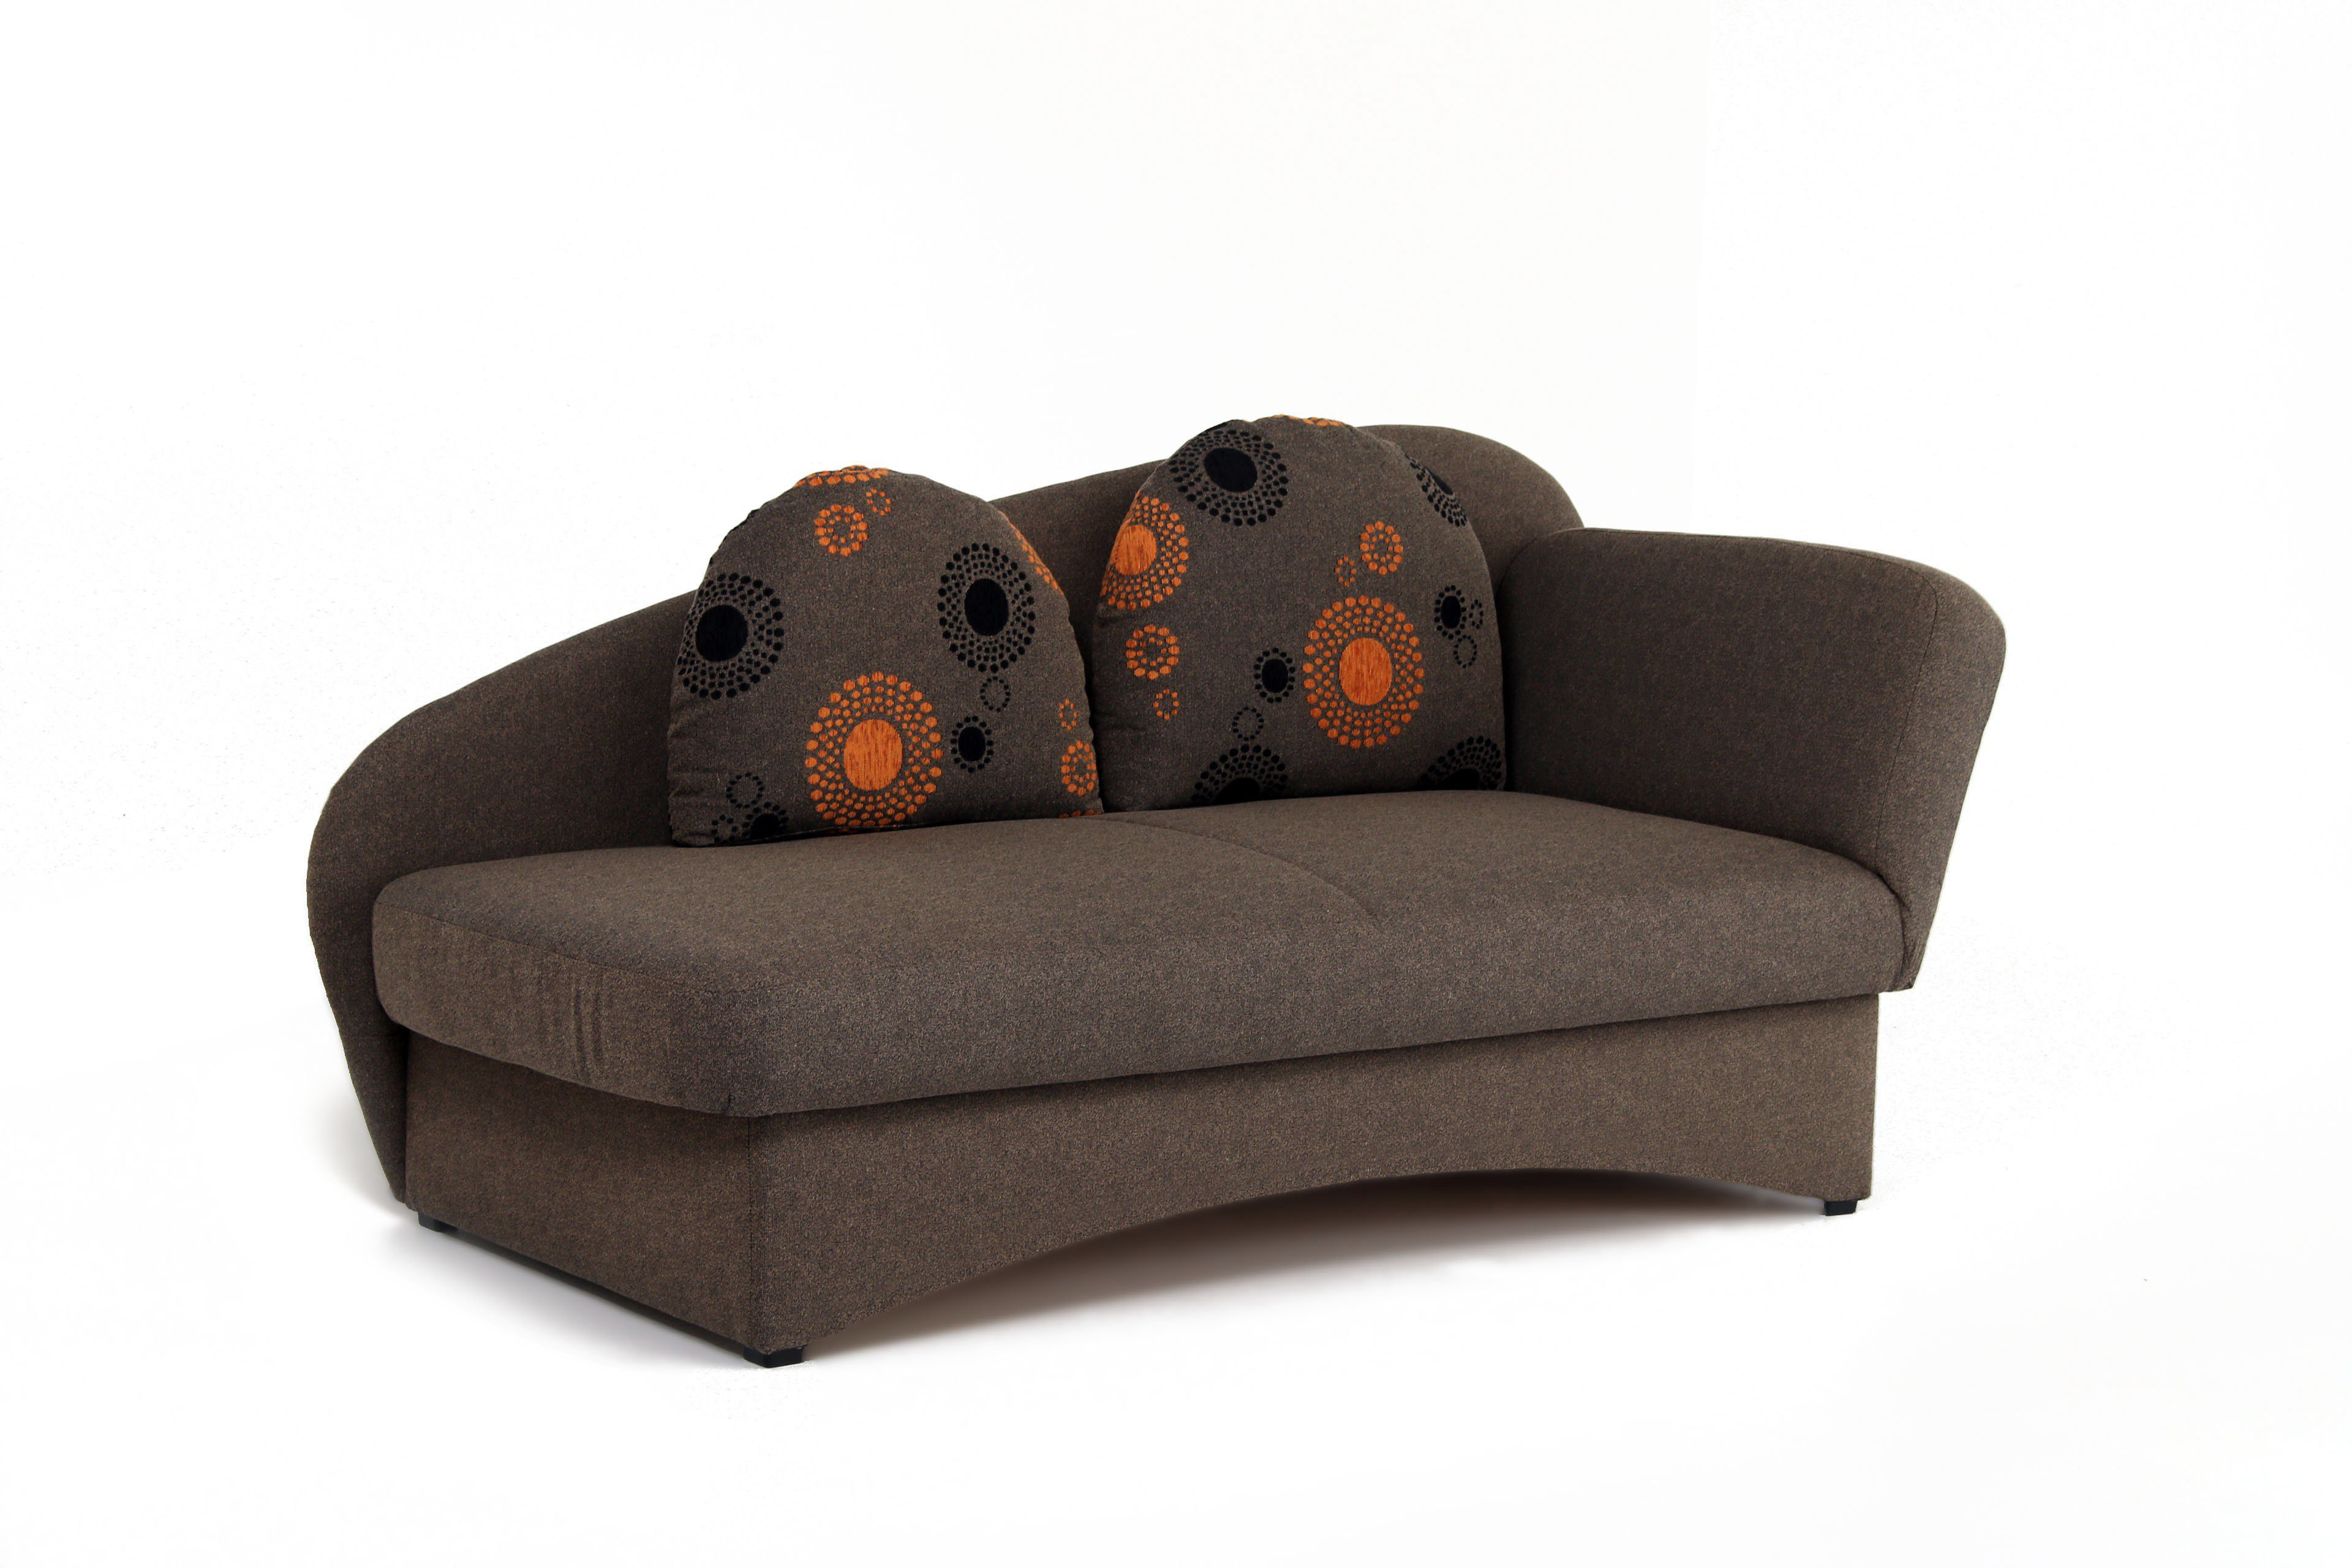 nehl wohnideen tim schlafsofa mit bettkasten m bel letz ihr online shop. Black Bedroom Furniture Sets. Home Design Ideas